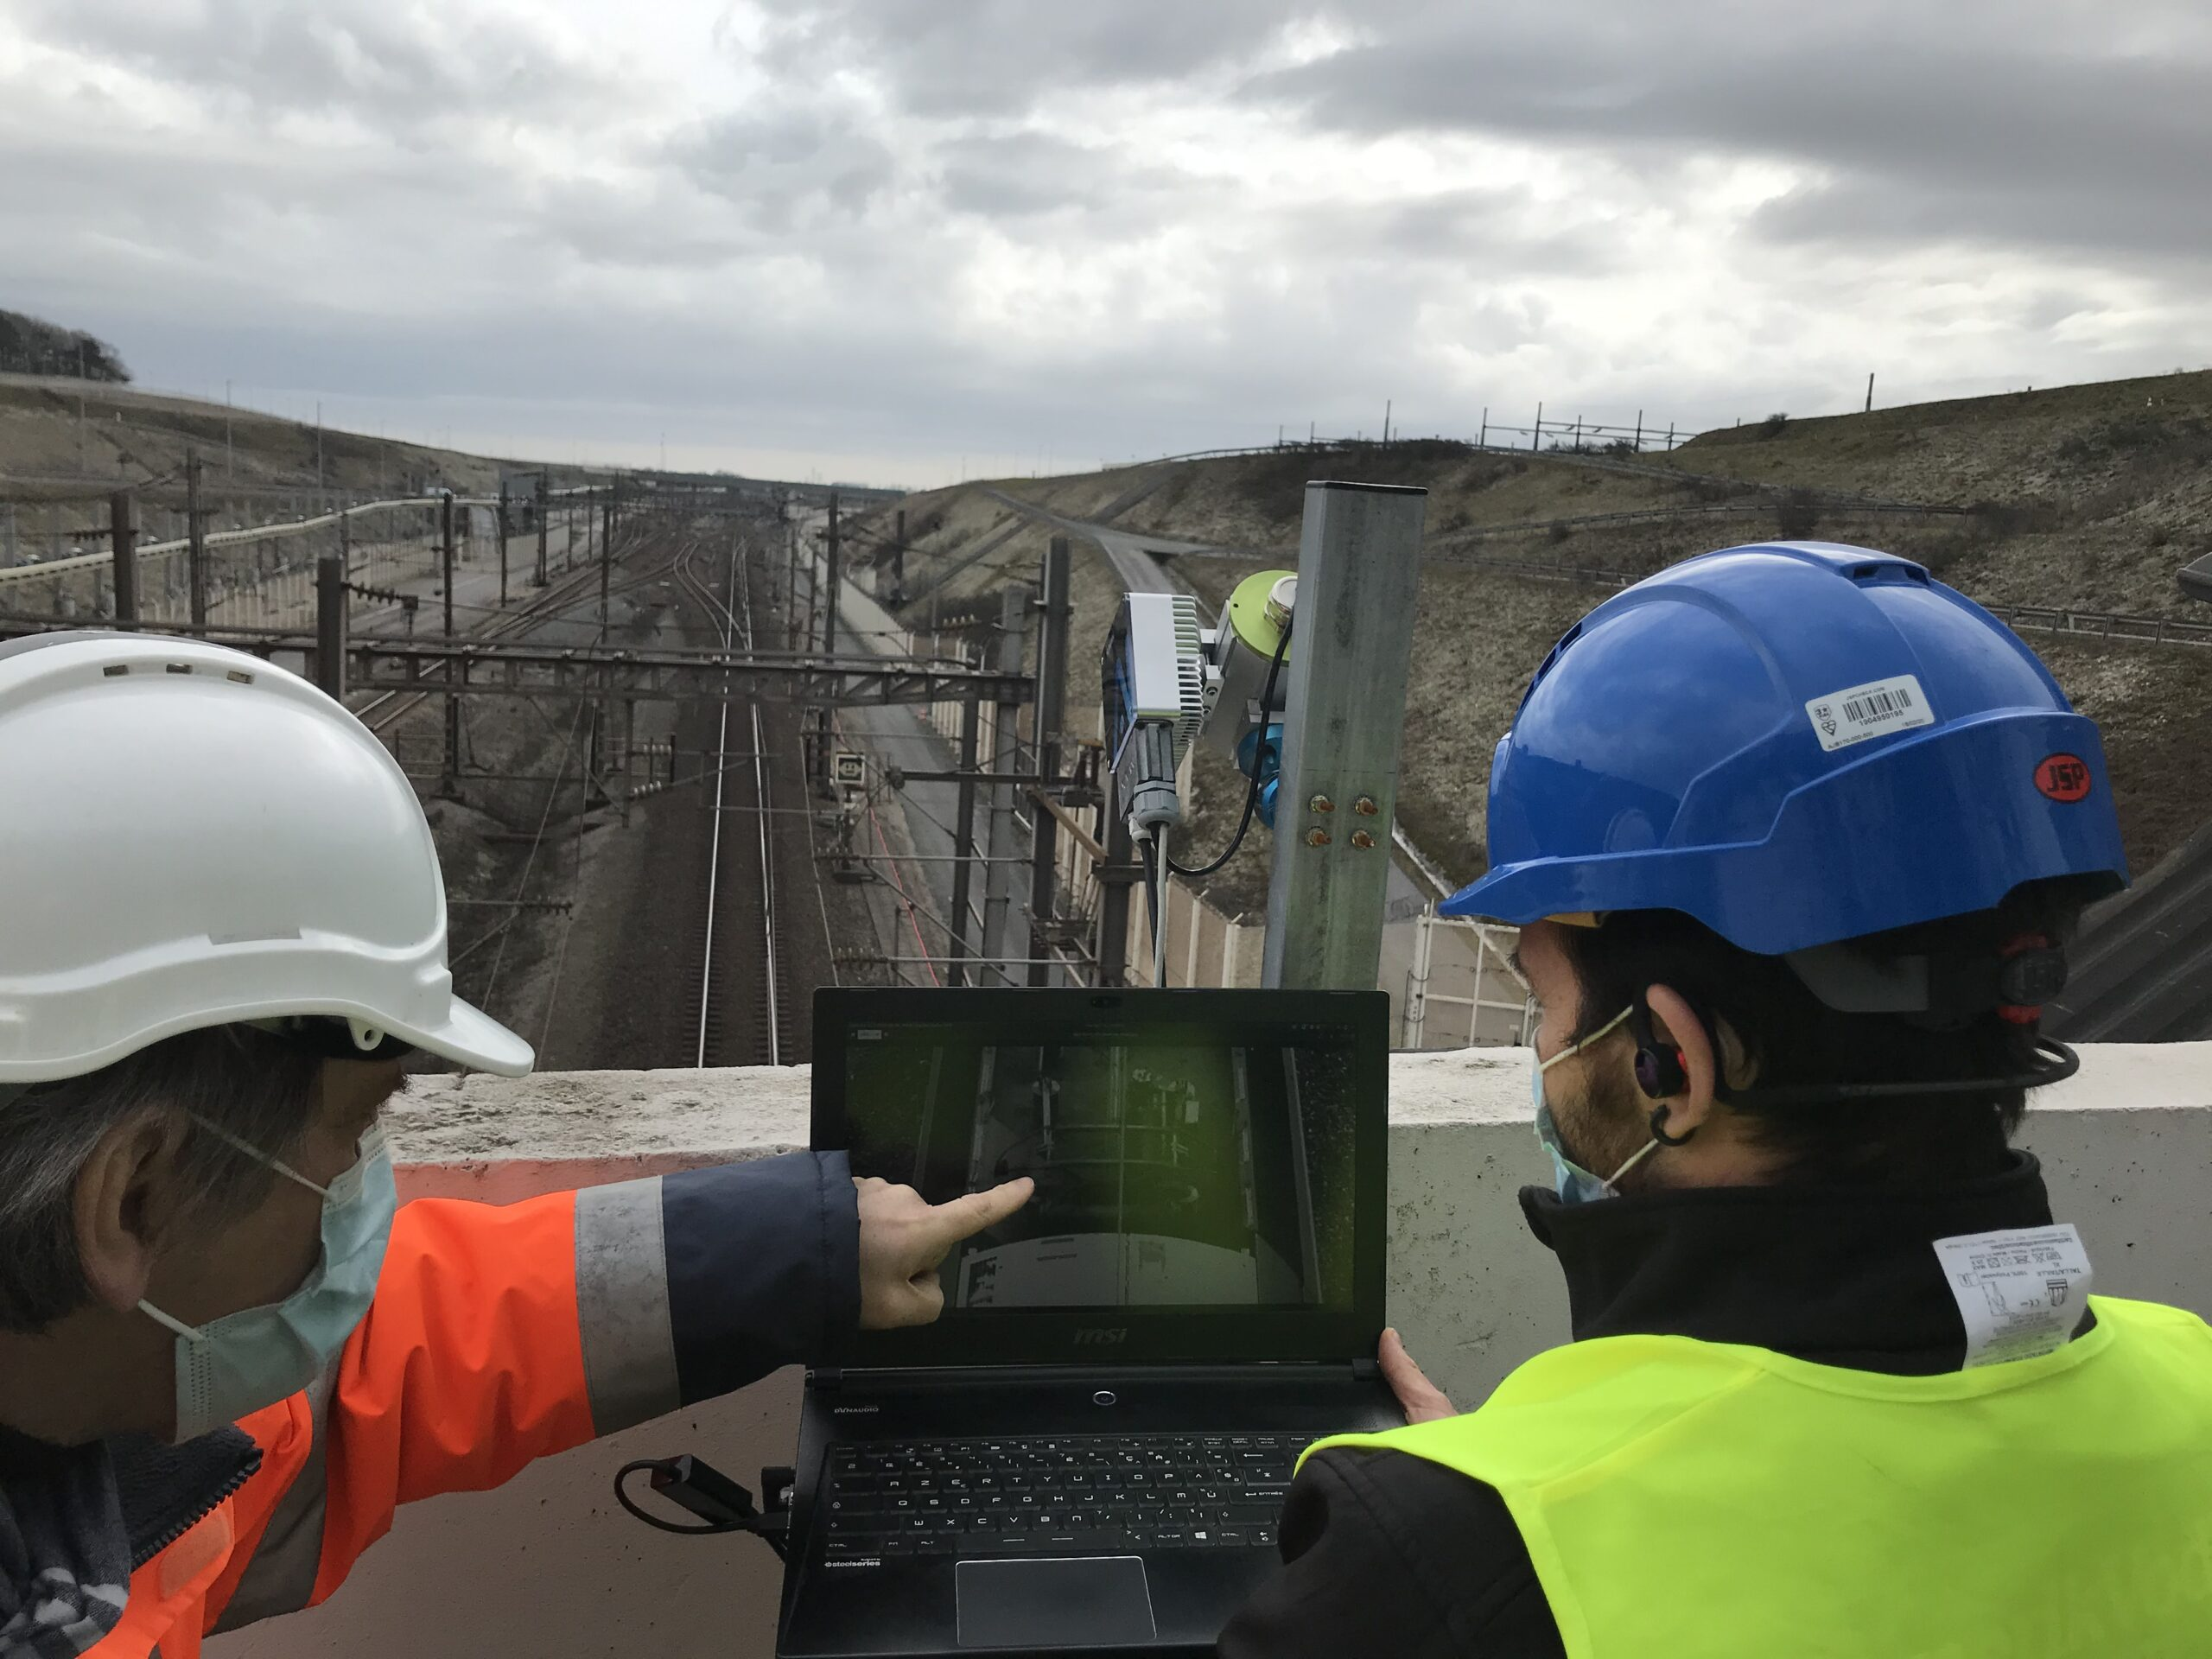 The client is showing with its finger the output of the real-time pantograph analysis performed at Eurotunnel.